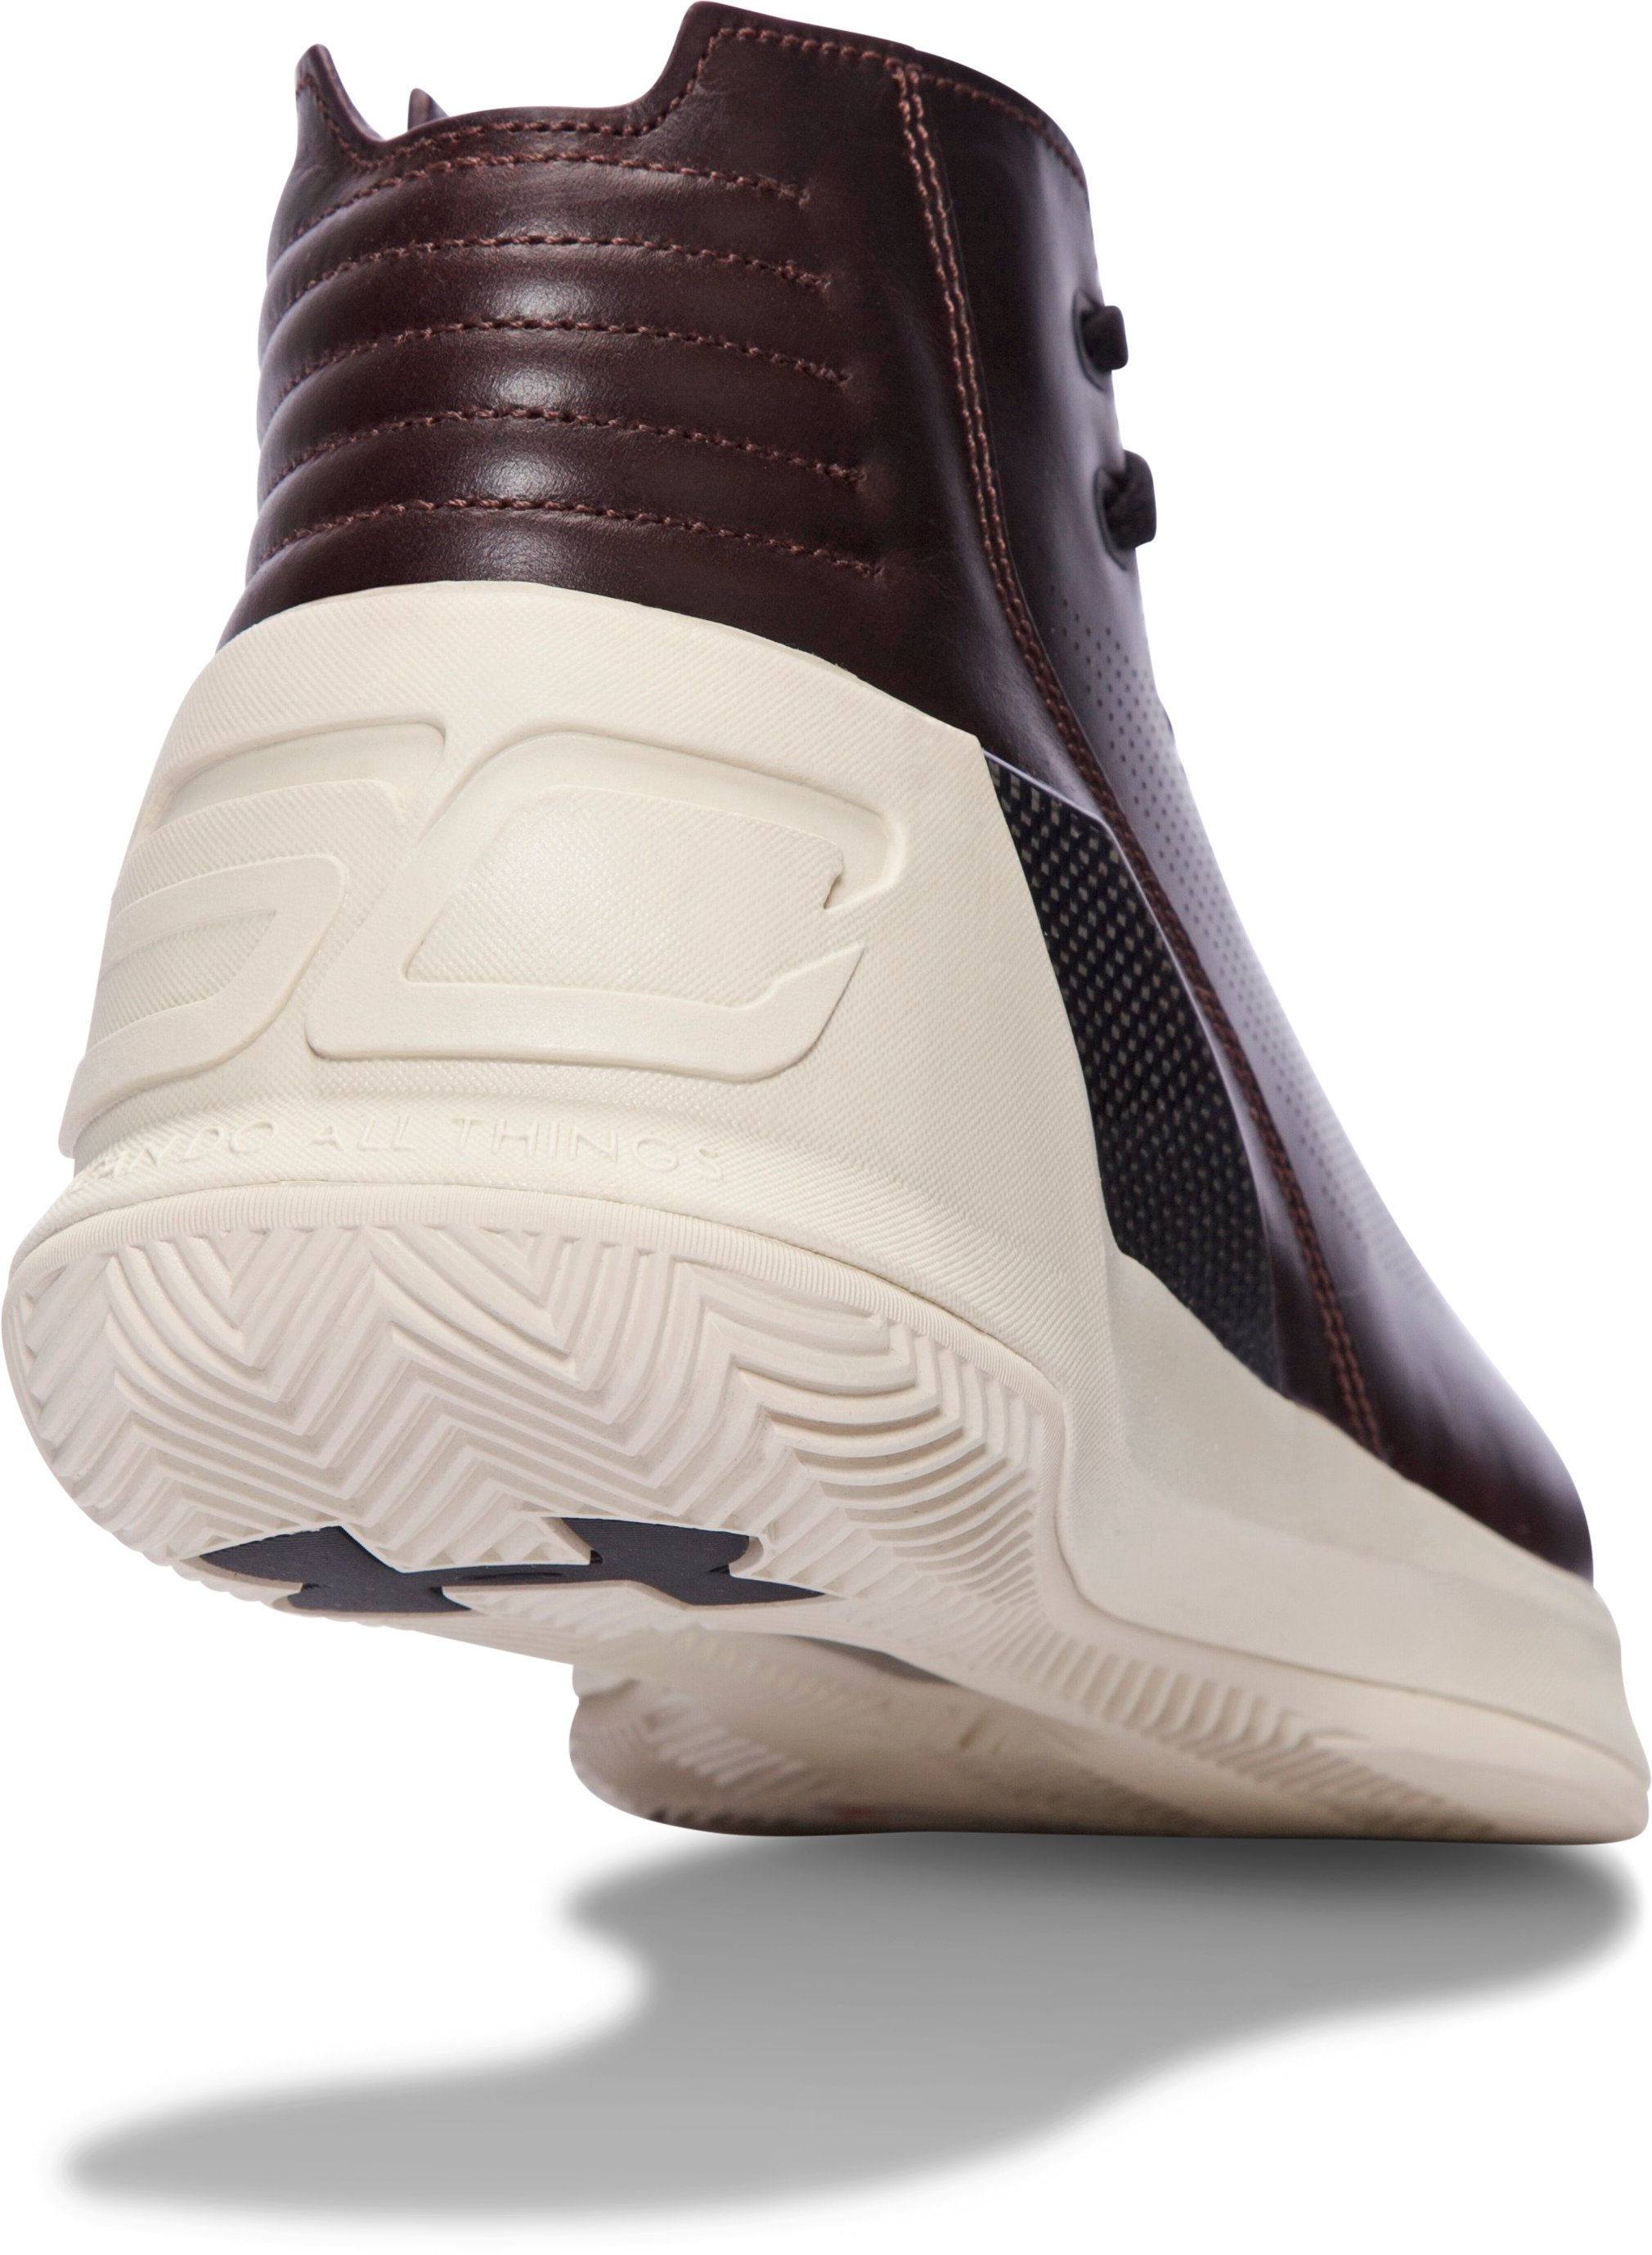 Men's UA Curry Lux Oxblood Leather Basketball Shoes, Ox Blood, undefined